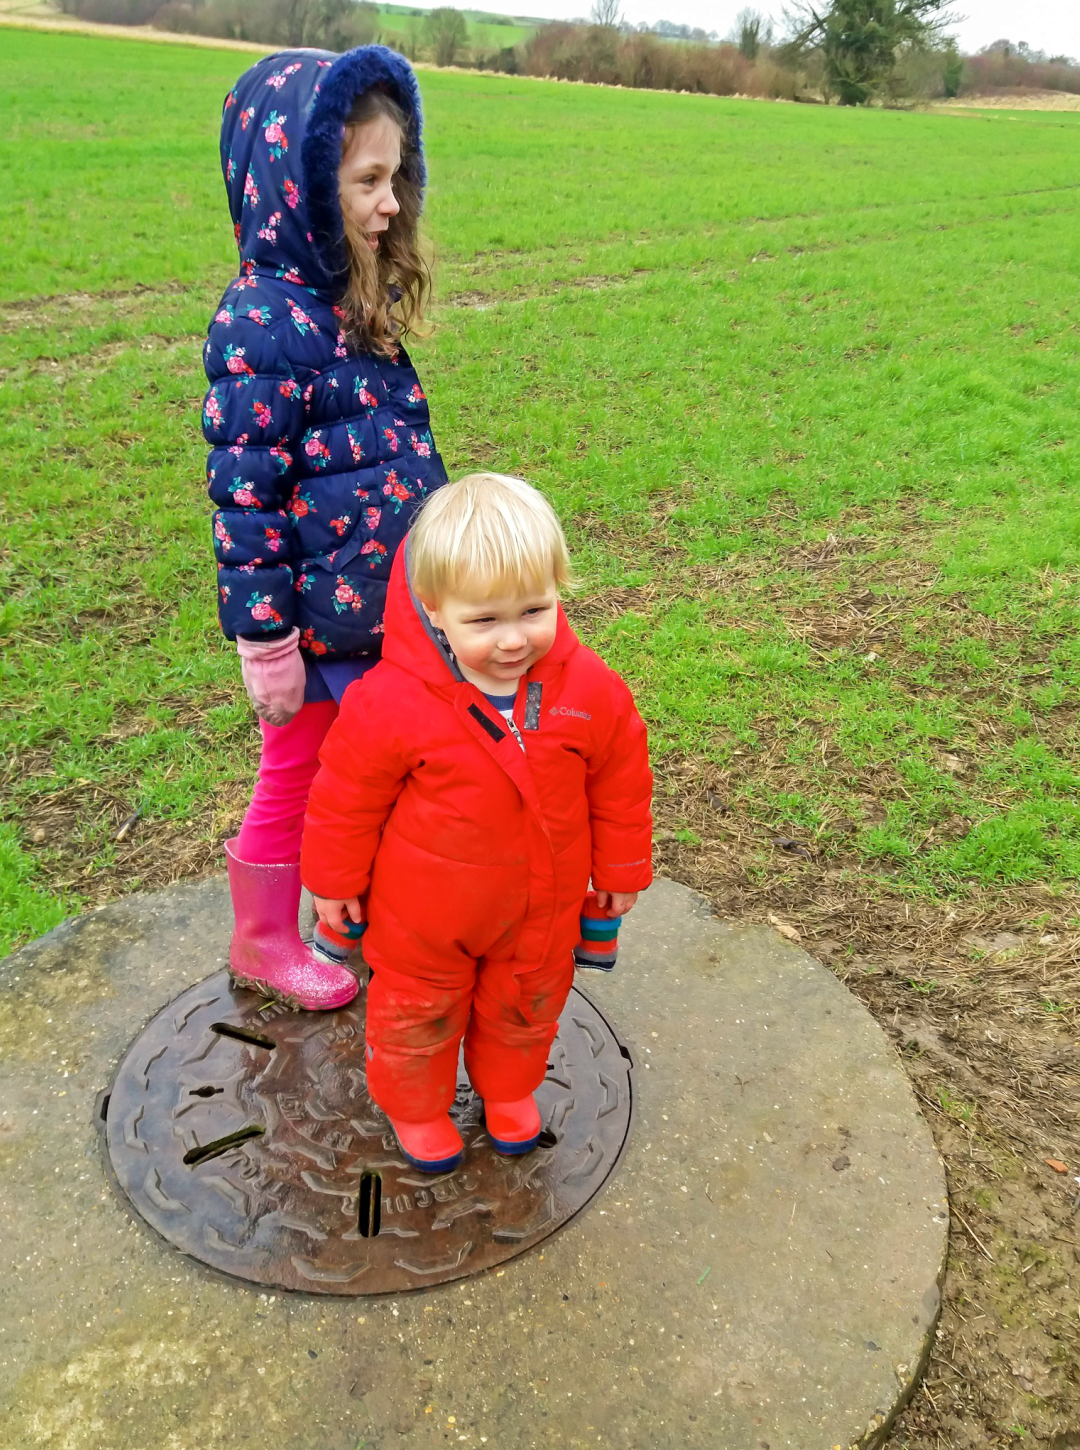 A photograph of a little girl and her baby brother on a muddy walk at Lullingstone Park - Our Weekend Happy #4 - Muddy Walks, an Afternoon Nap & Songs at Dinnertime - Mrs H's favourite things